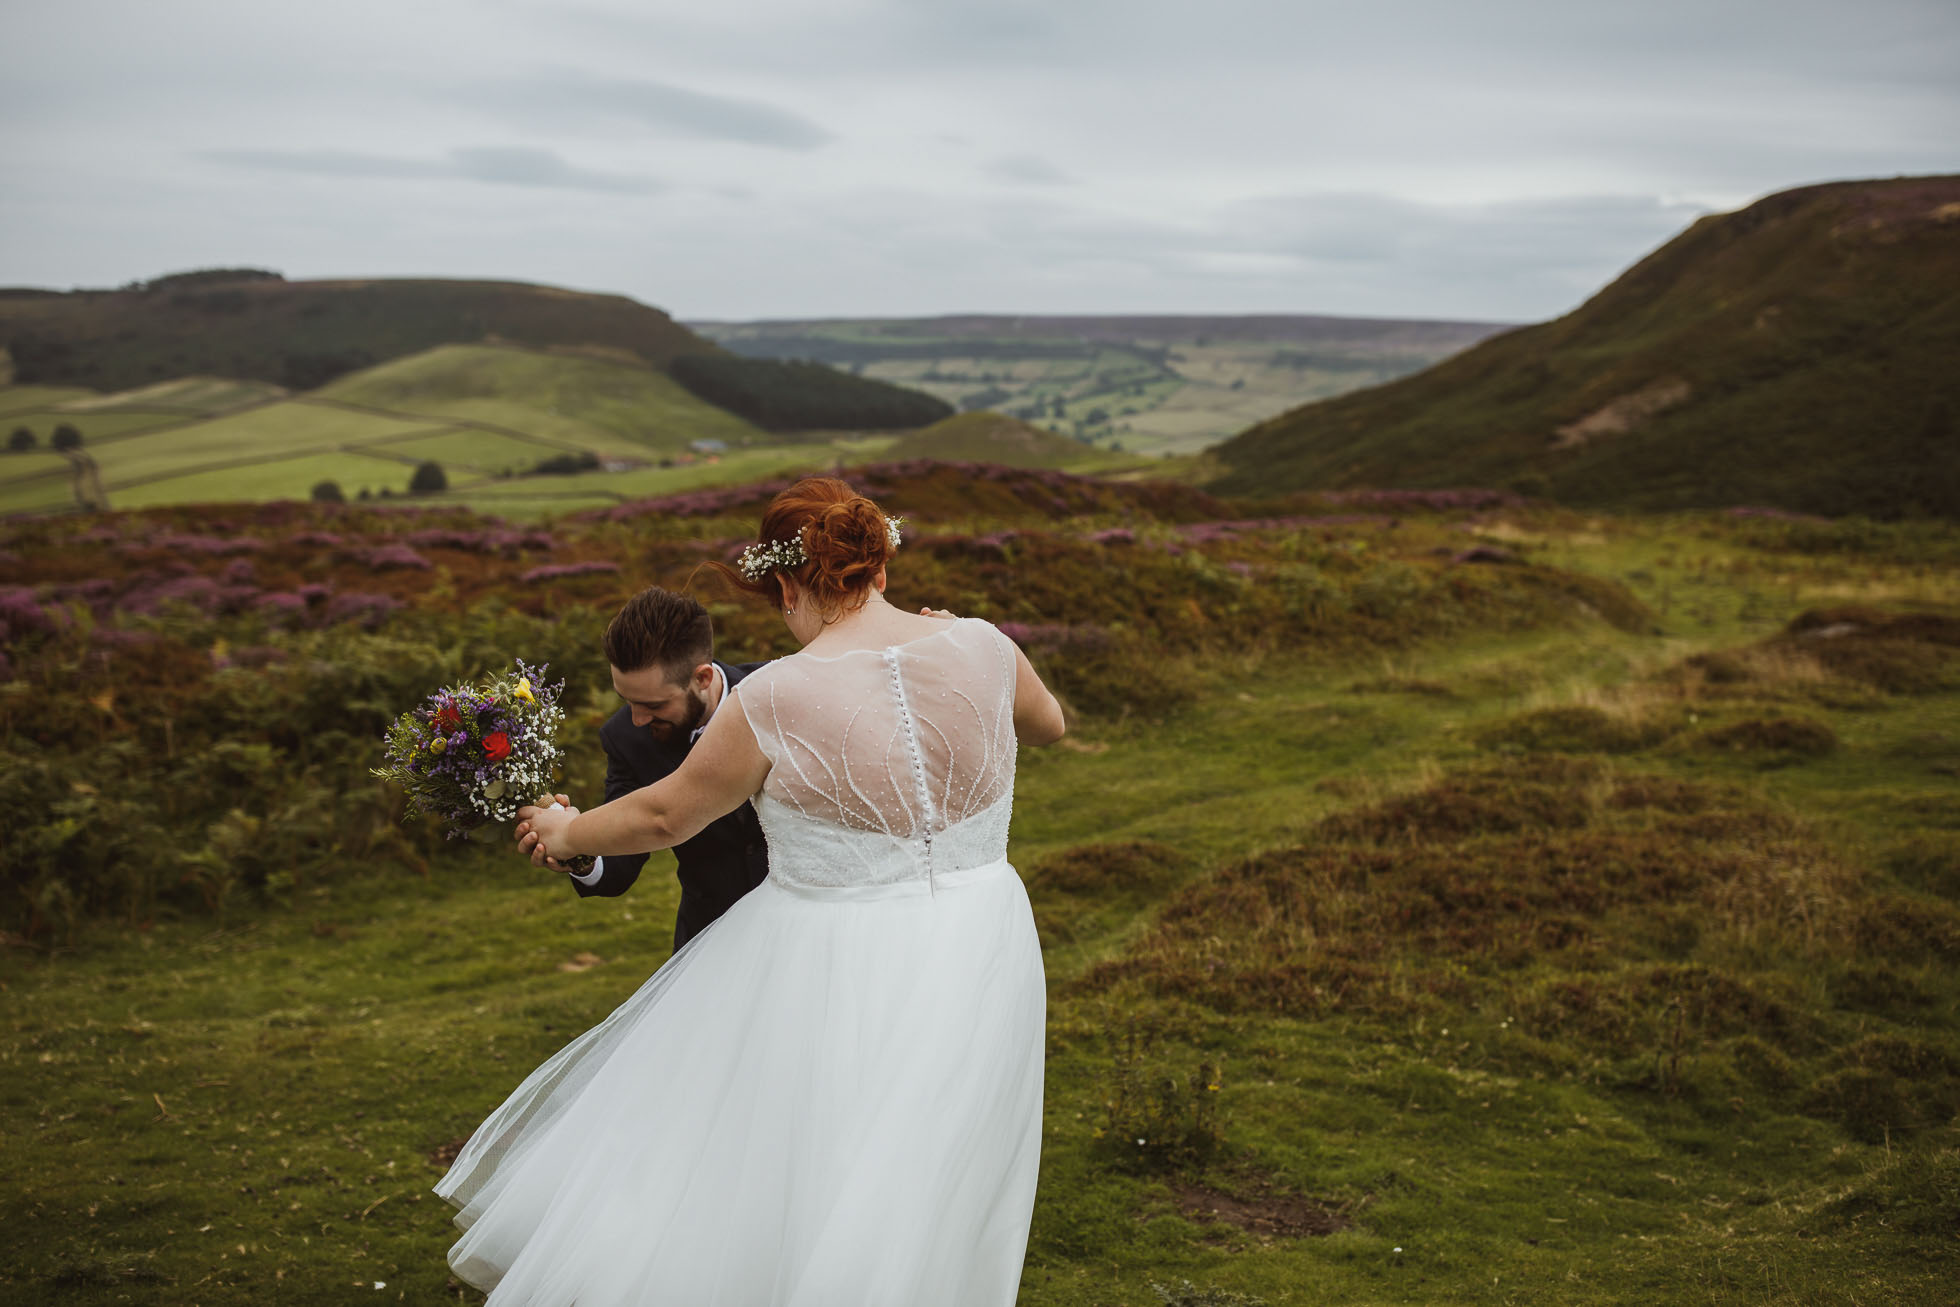 danby_castle_wedding_photographer-73.jpg